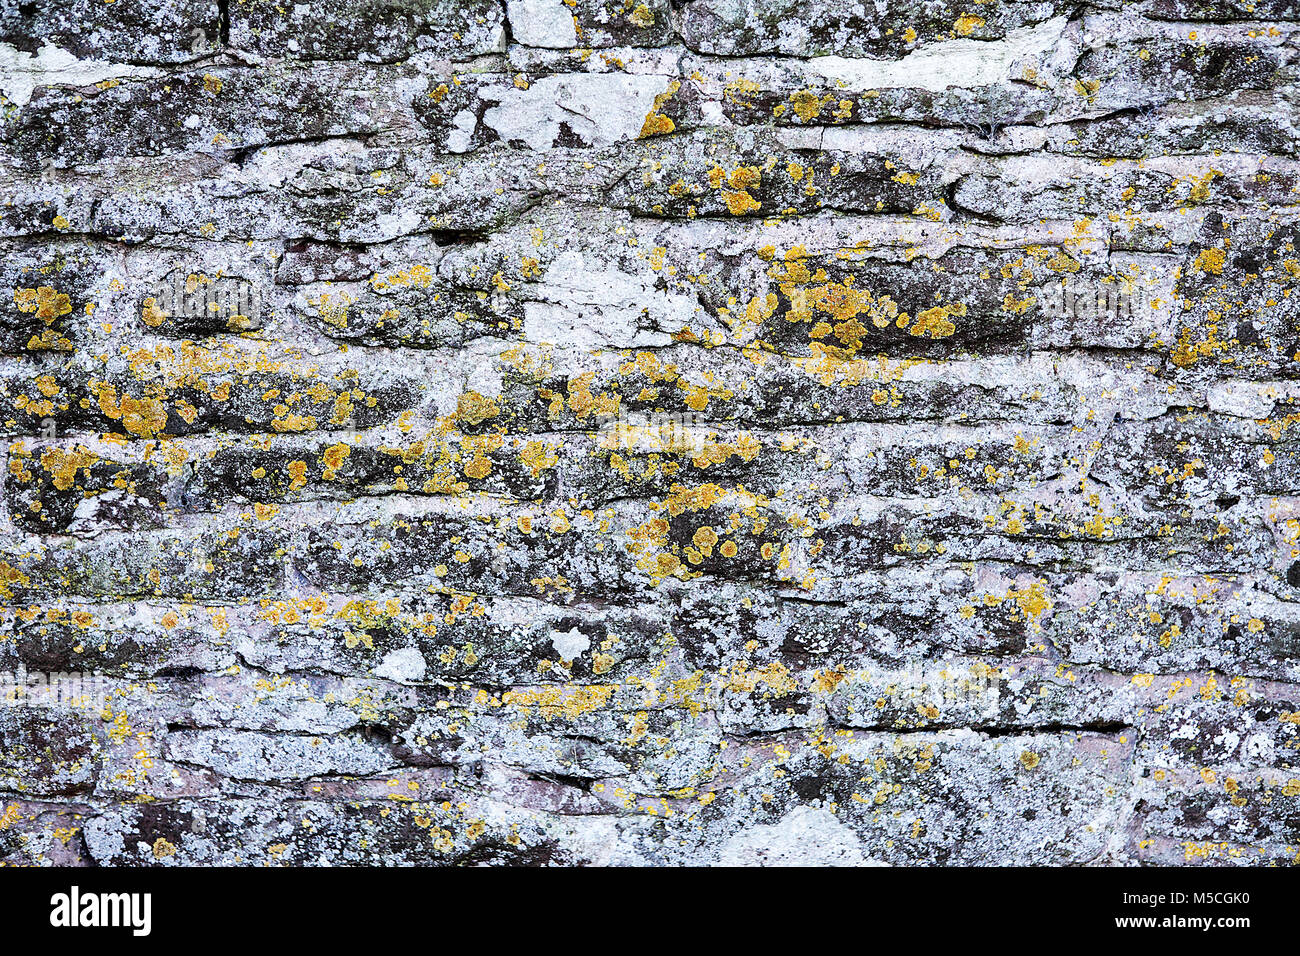 grey sandstone texture stockfotos grey sandstone texture bilder alamy. Black Bedroom Furniture Sets. Home Design Ideas